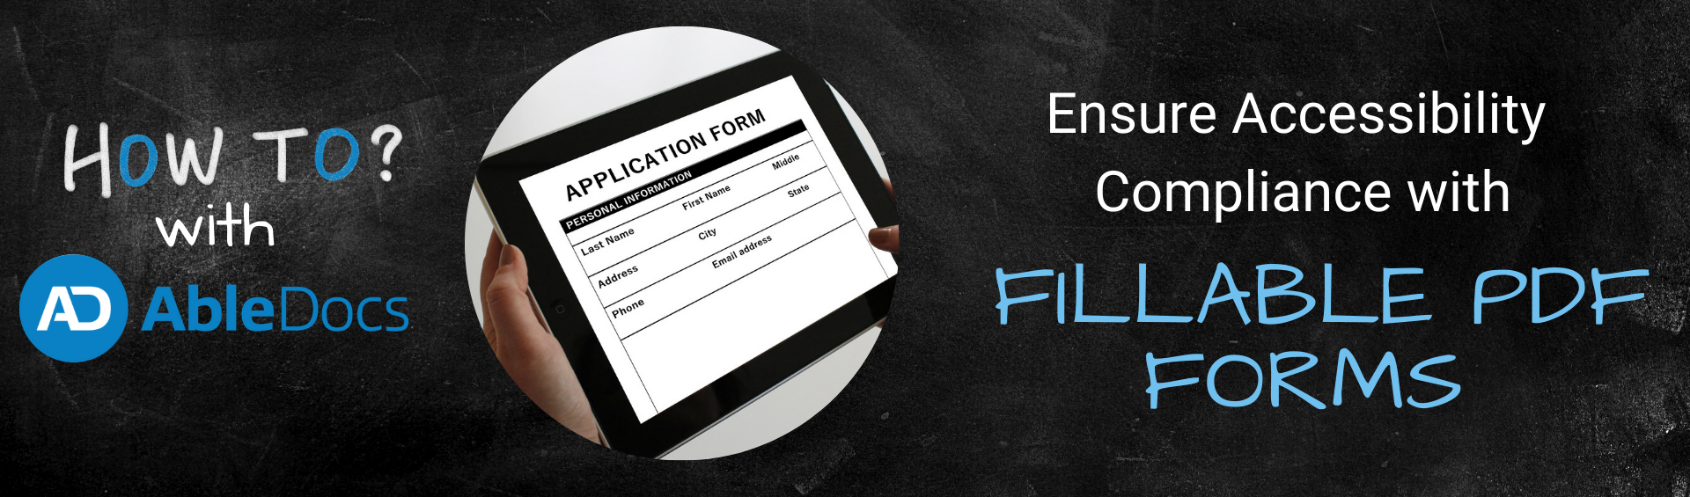 How to ensure accessibility compliance with fillable PDF forms